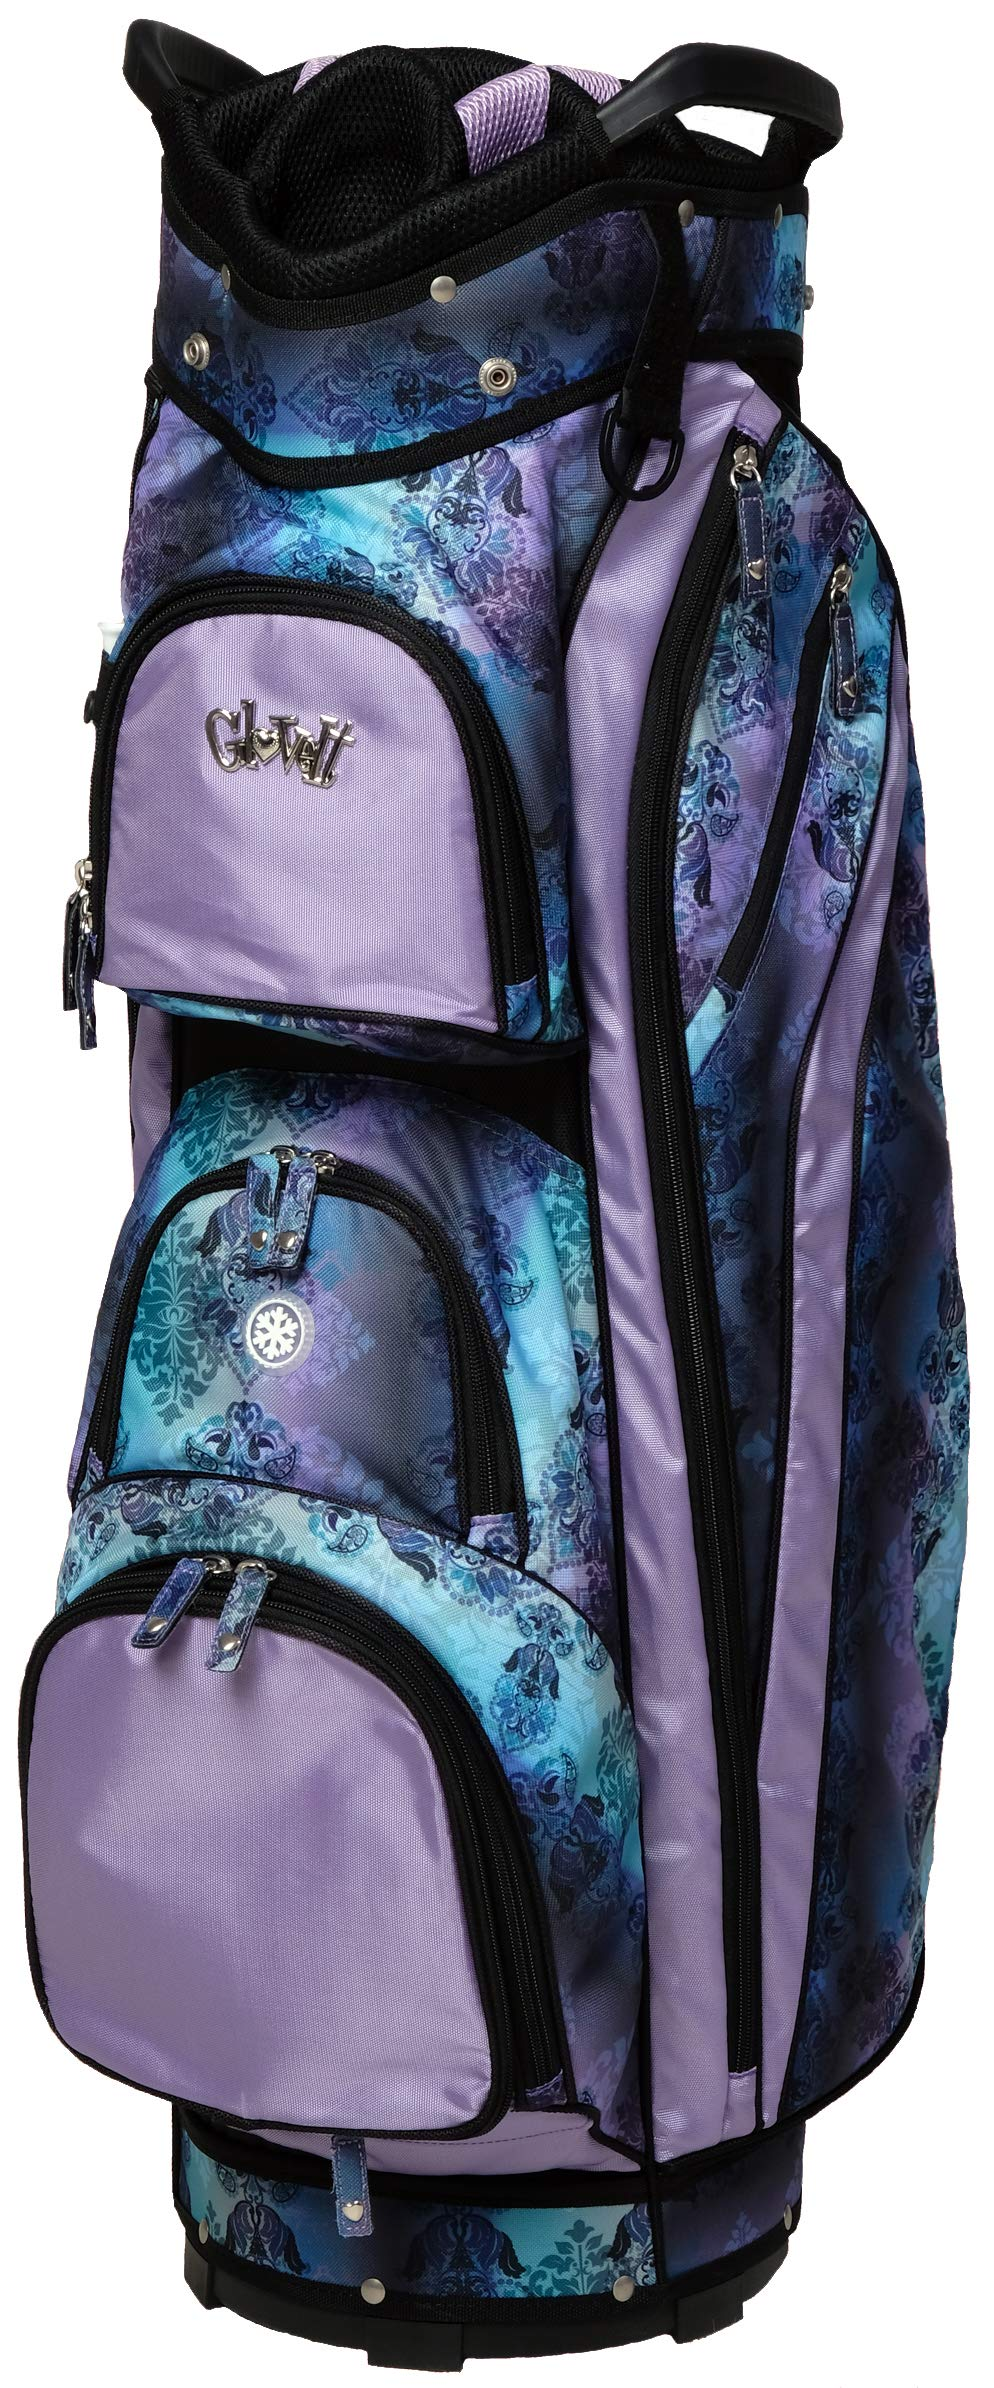 Glove It Women's Golf Bag Ladies 14 Way Golf Carry Bag - Golf Cart Bags for Women - Womens Lightweight Golf Travel Case - Easy Lift Handle - 2019 Lilac Paisley by Glove It